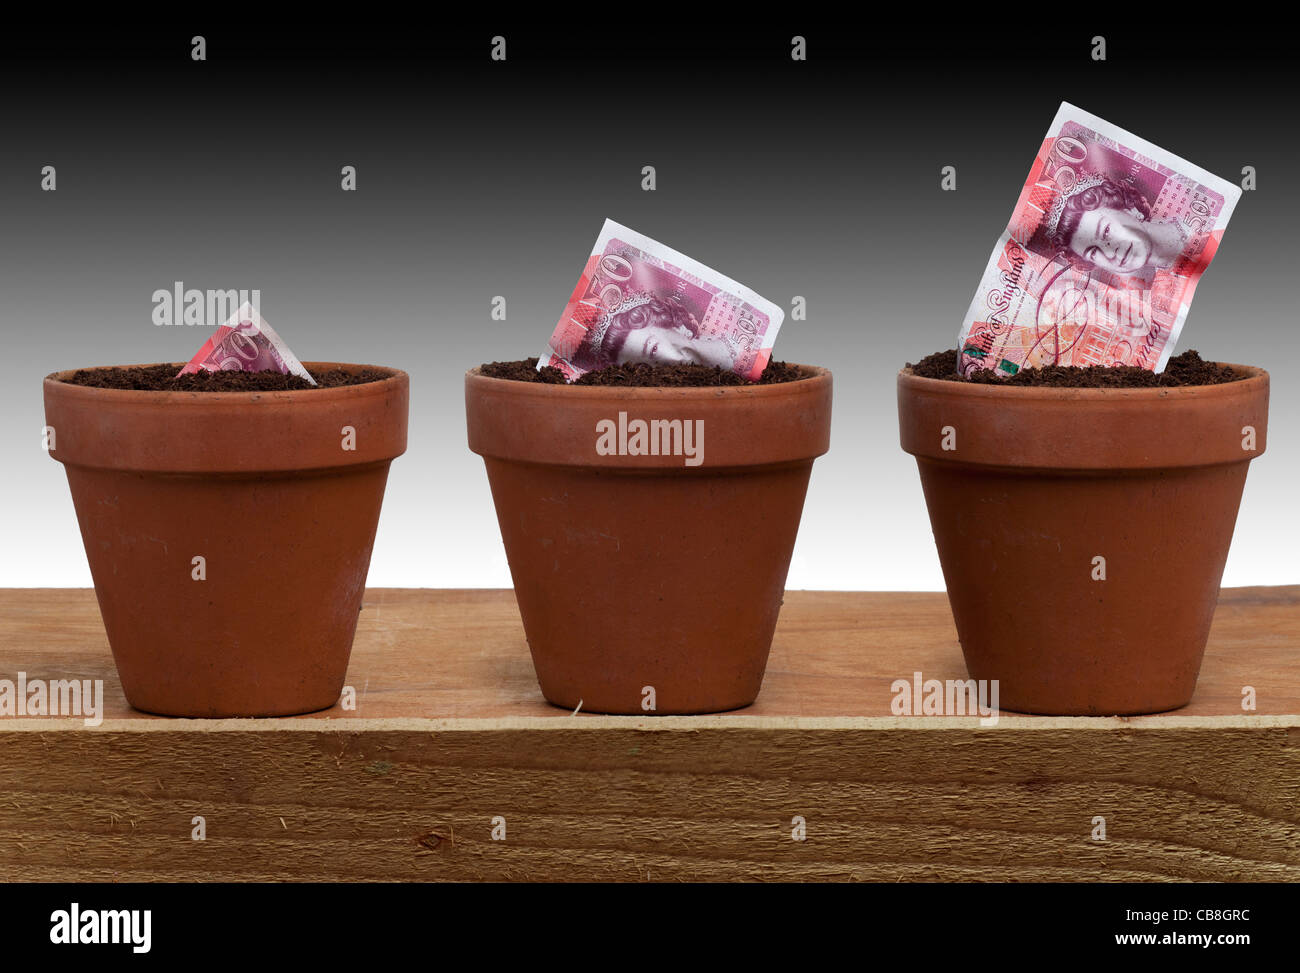 £50 50 pound note seedling growing into UK Bank of England new currency in an earthenware terracotta flower - Stock Image